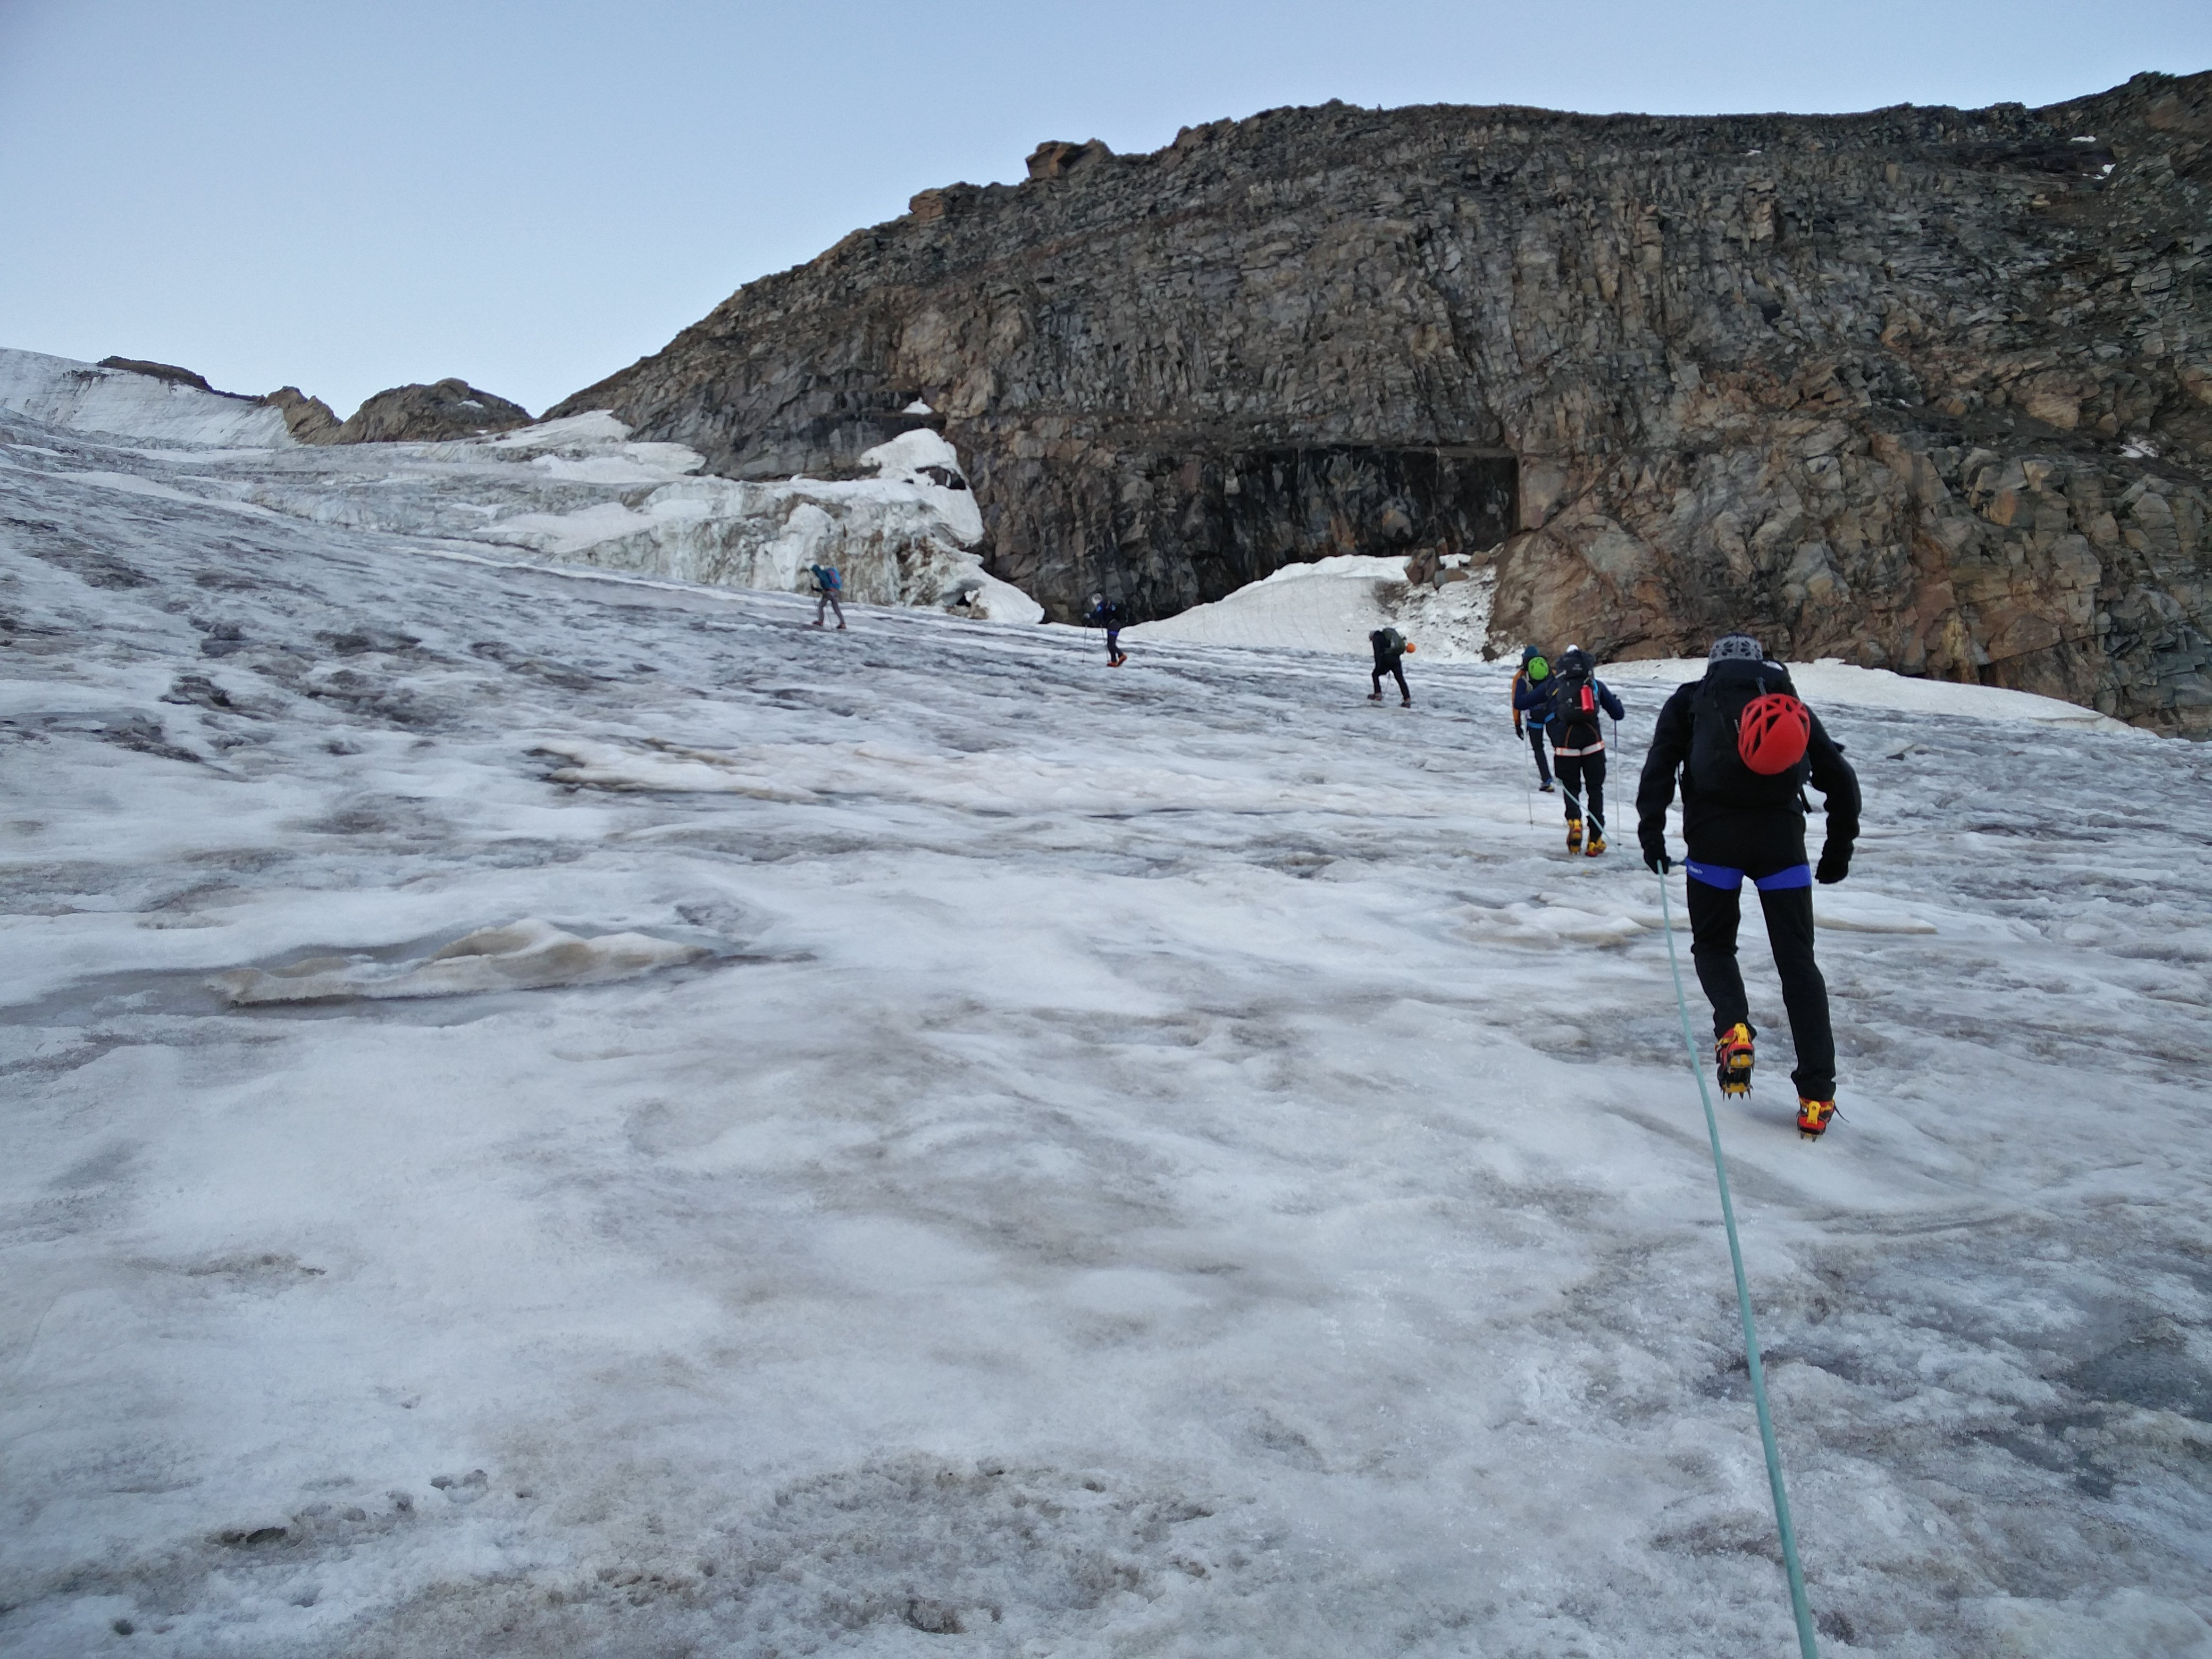 Making our way up on a glacier. Roped up already in crampons and with ice axes ready to action. We are properly on Climb Gran Paradiso acclimatisation day.